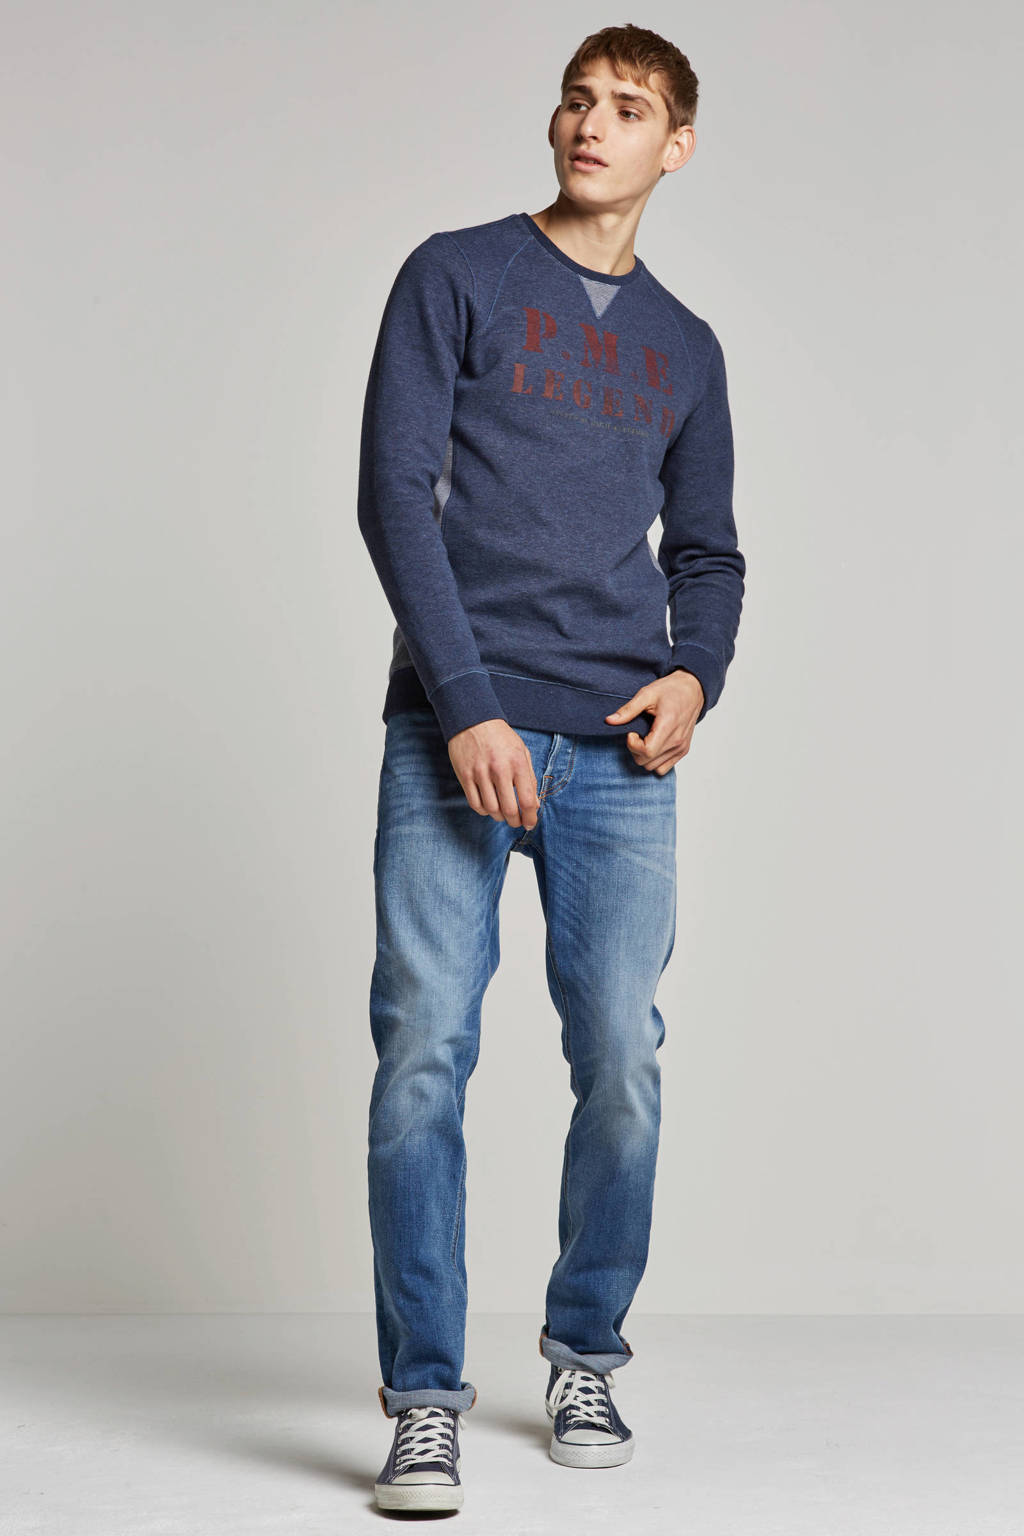 PME Legend sweater, Donkerblauw